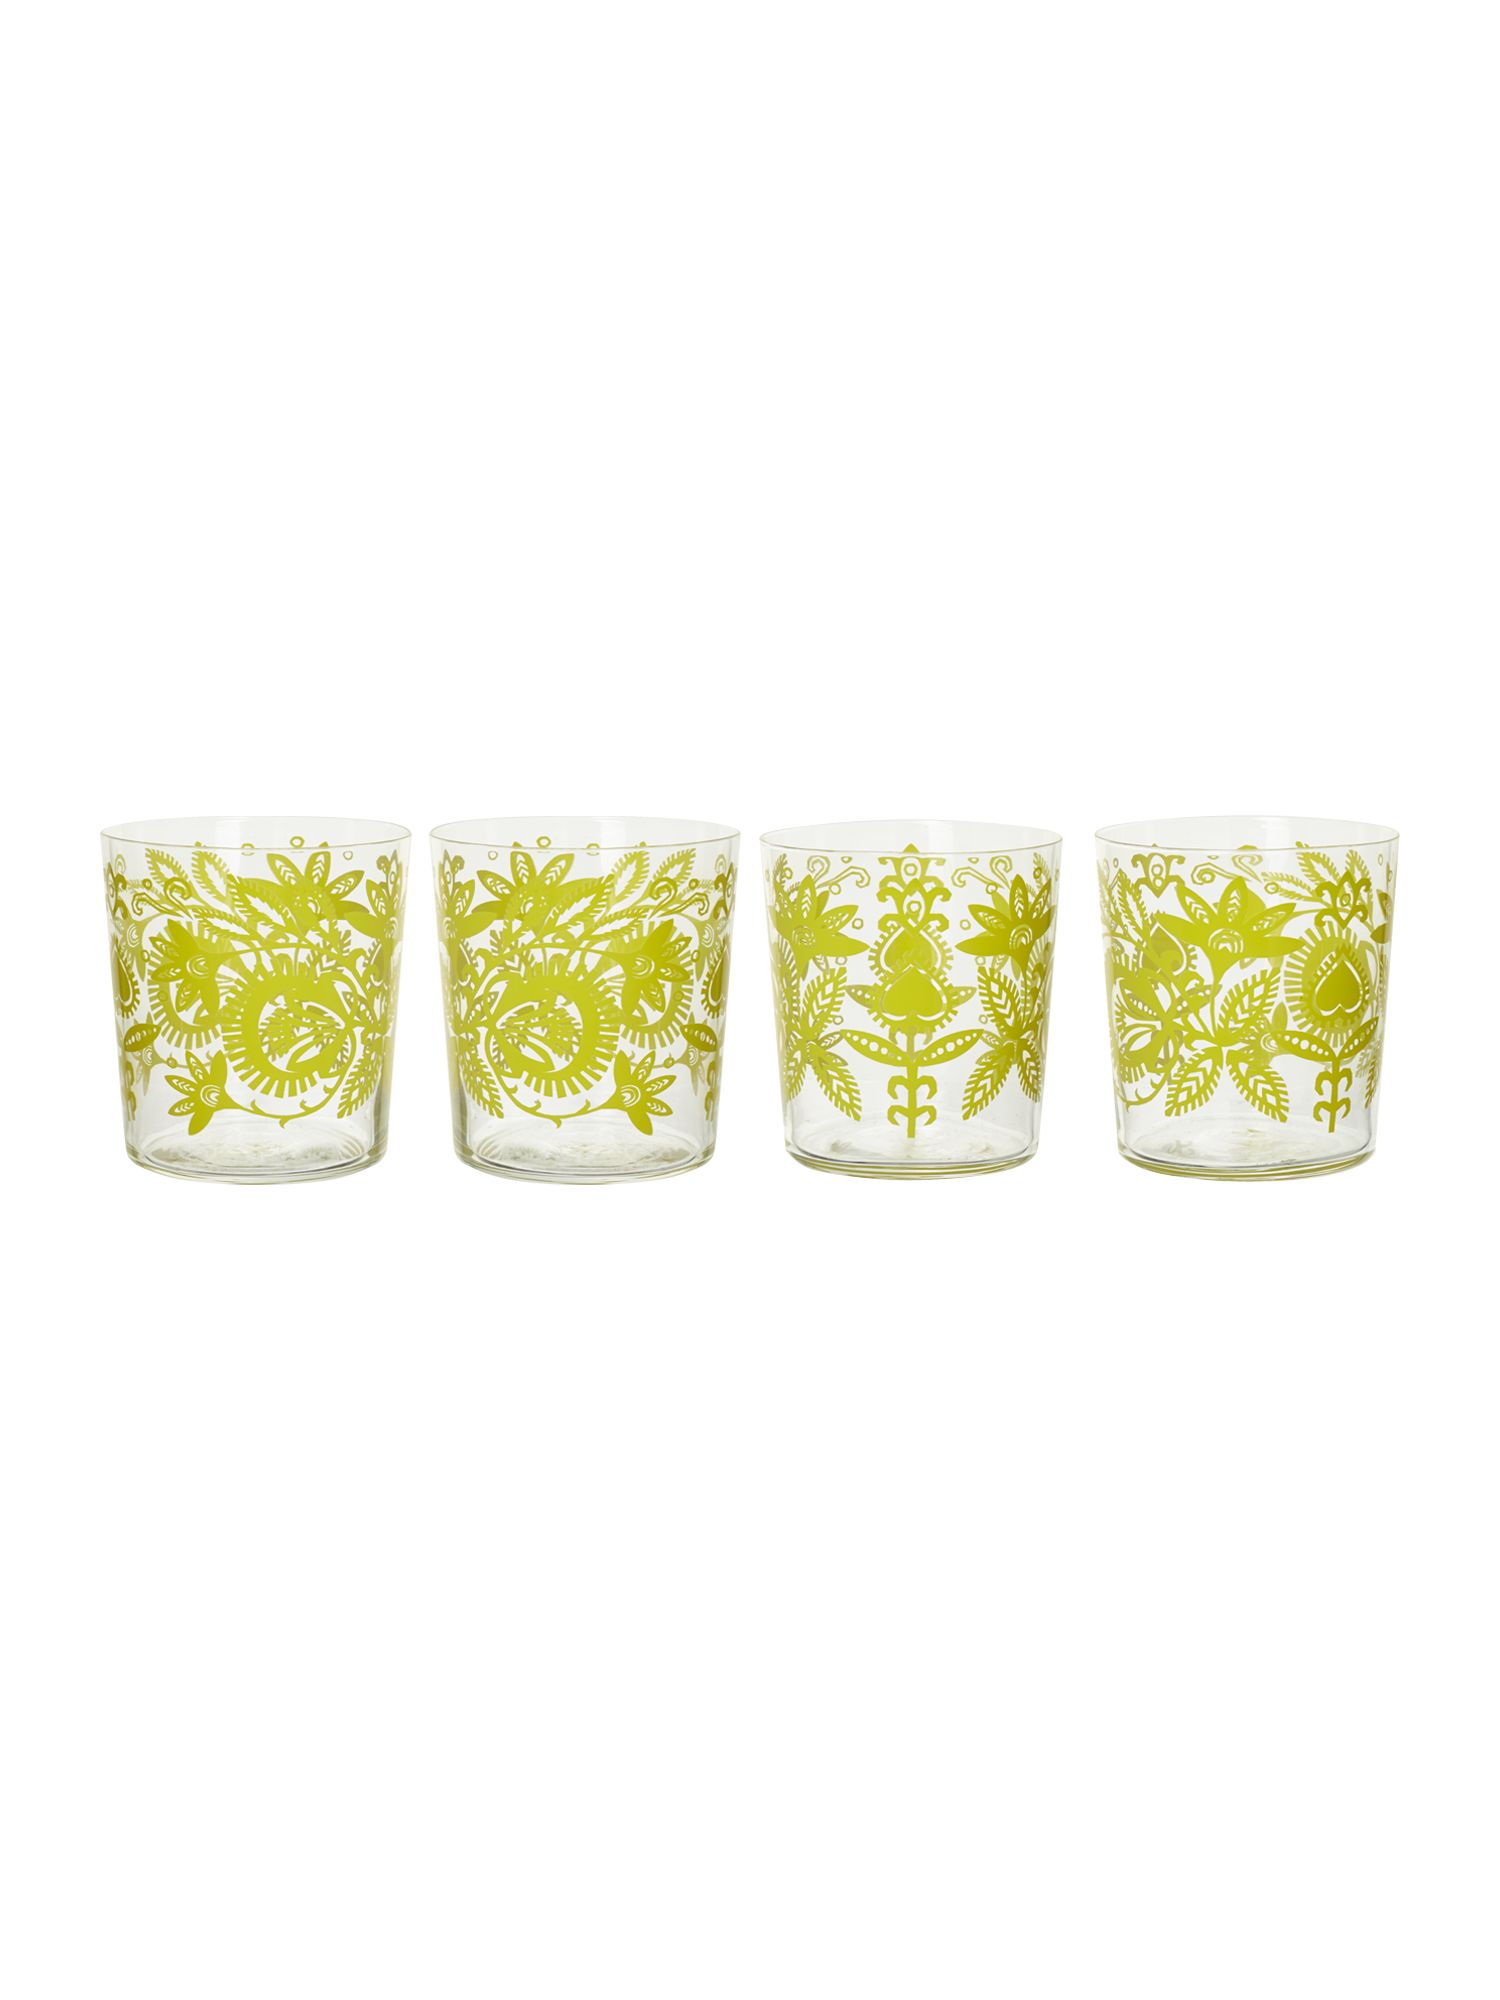 Ania tumbler glasses box of 4